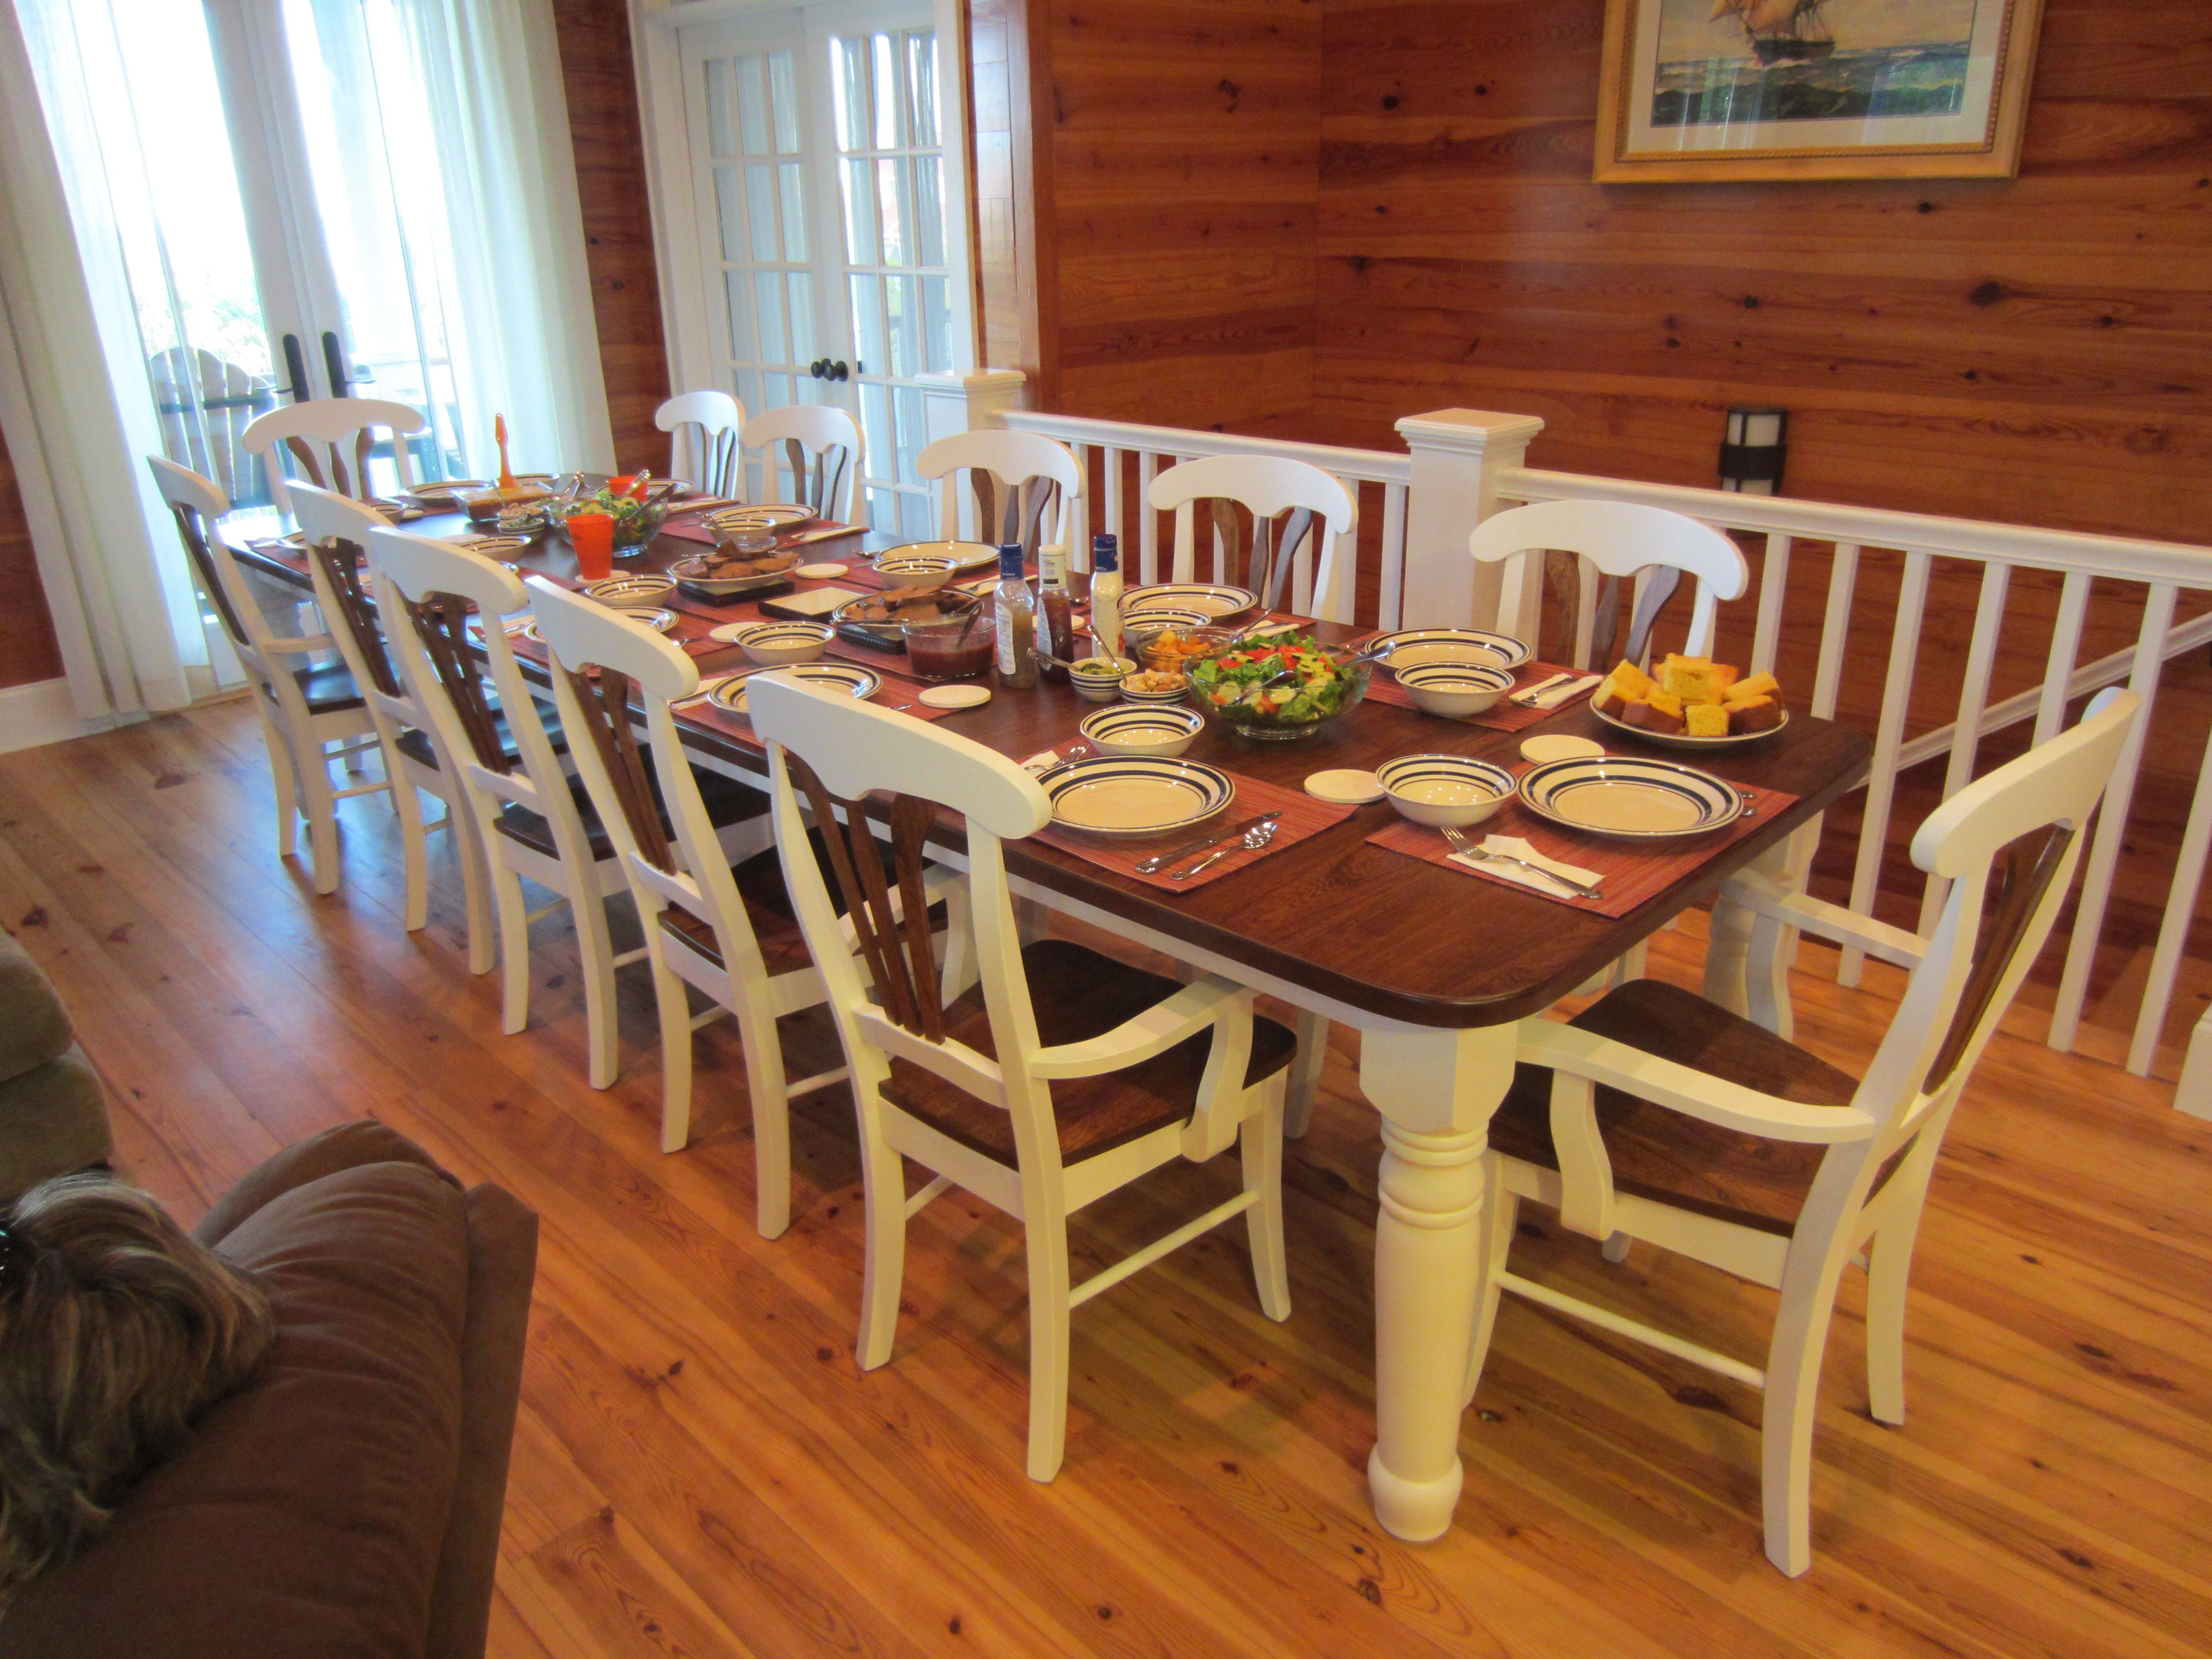 10 Seater Dining Amish Wood Dinng Table And Chairs Seats 10 Google Search